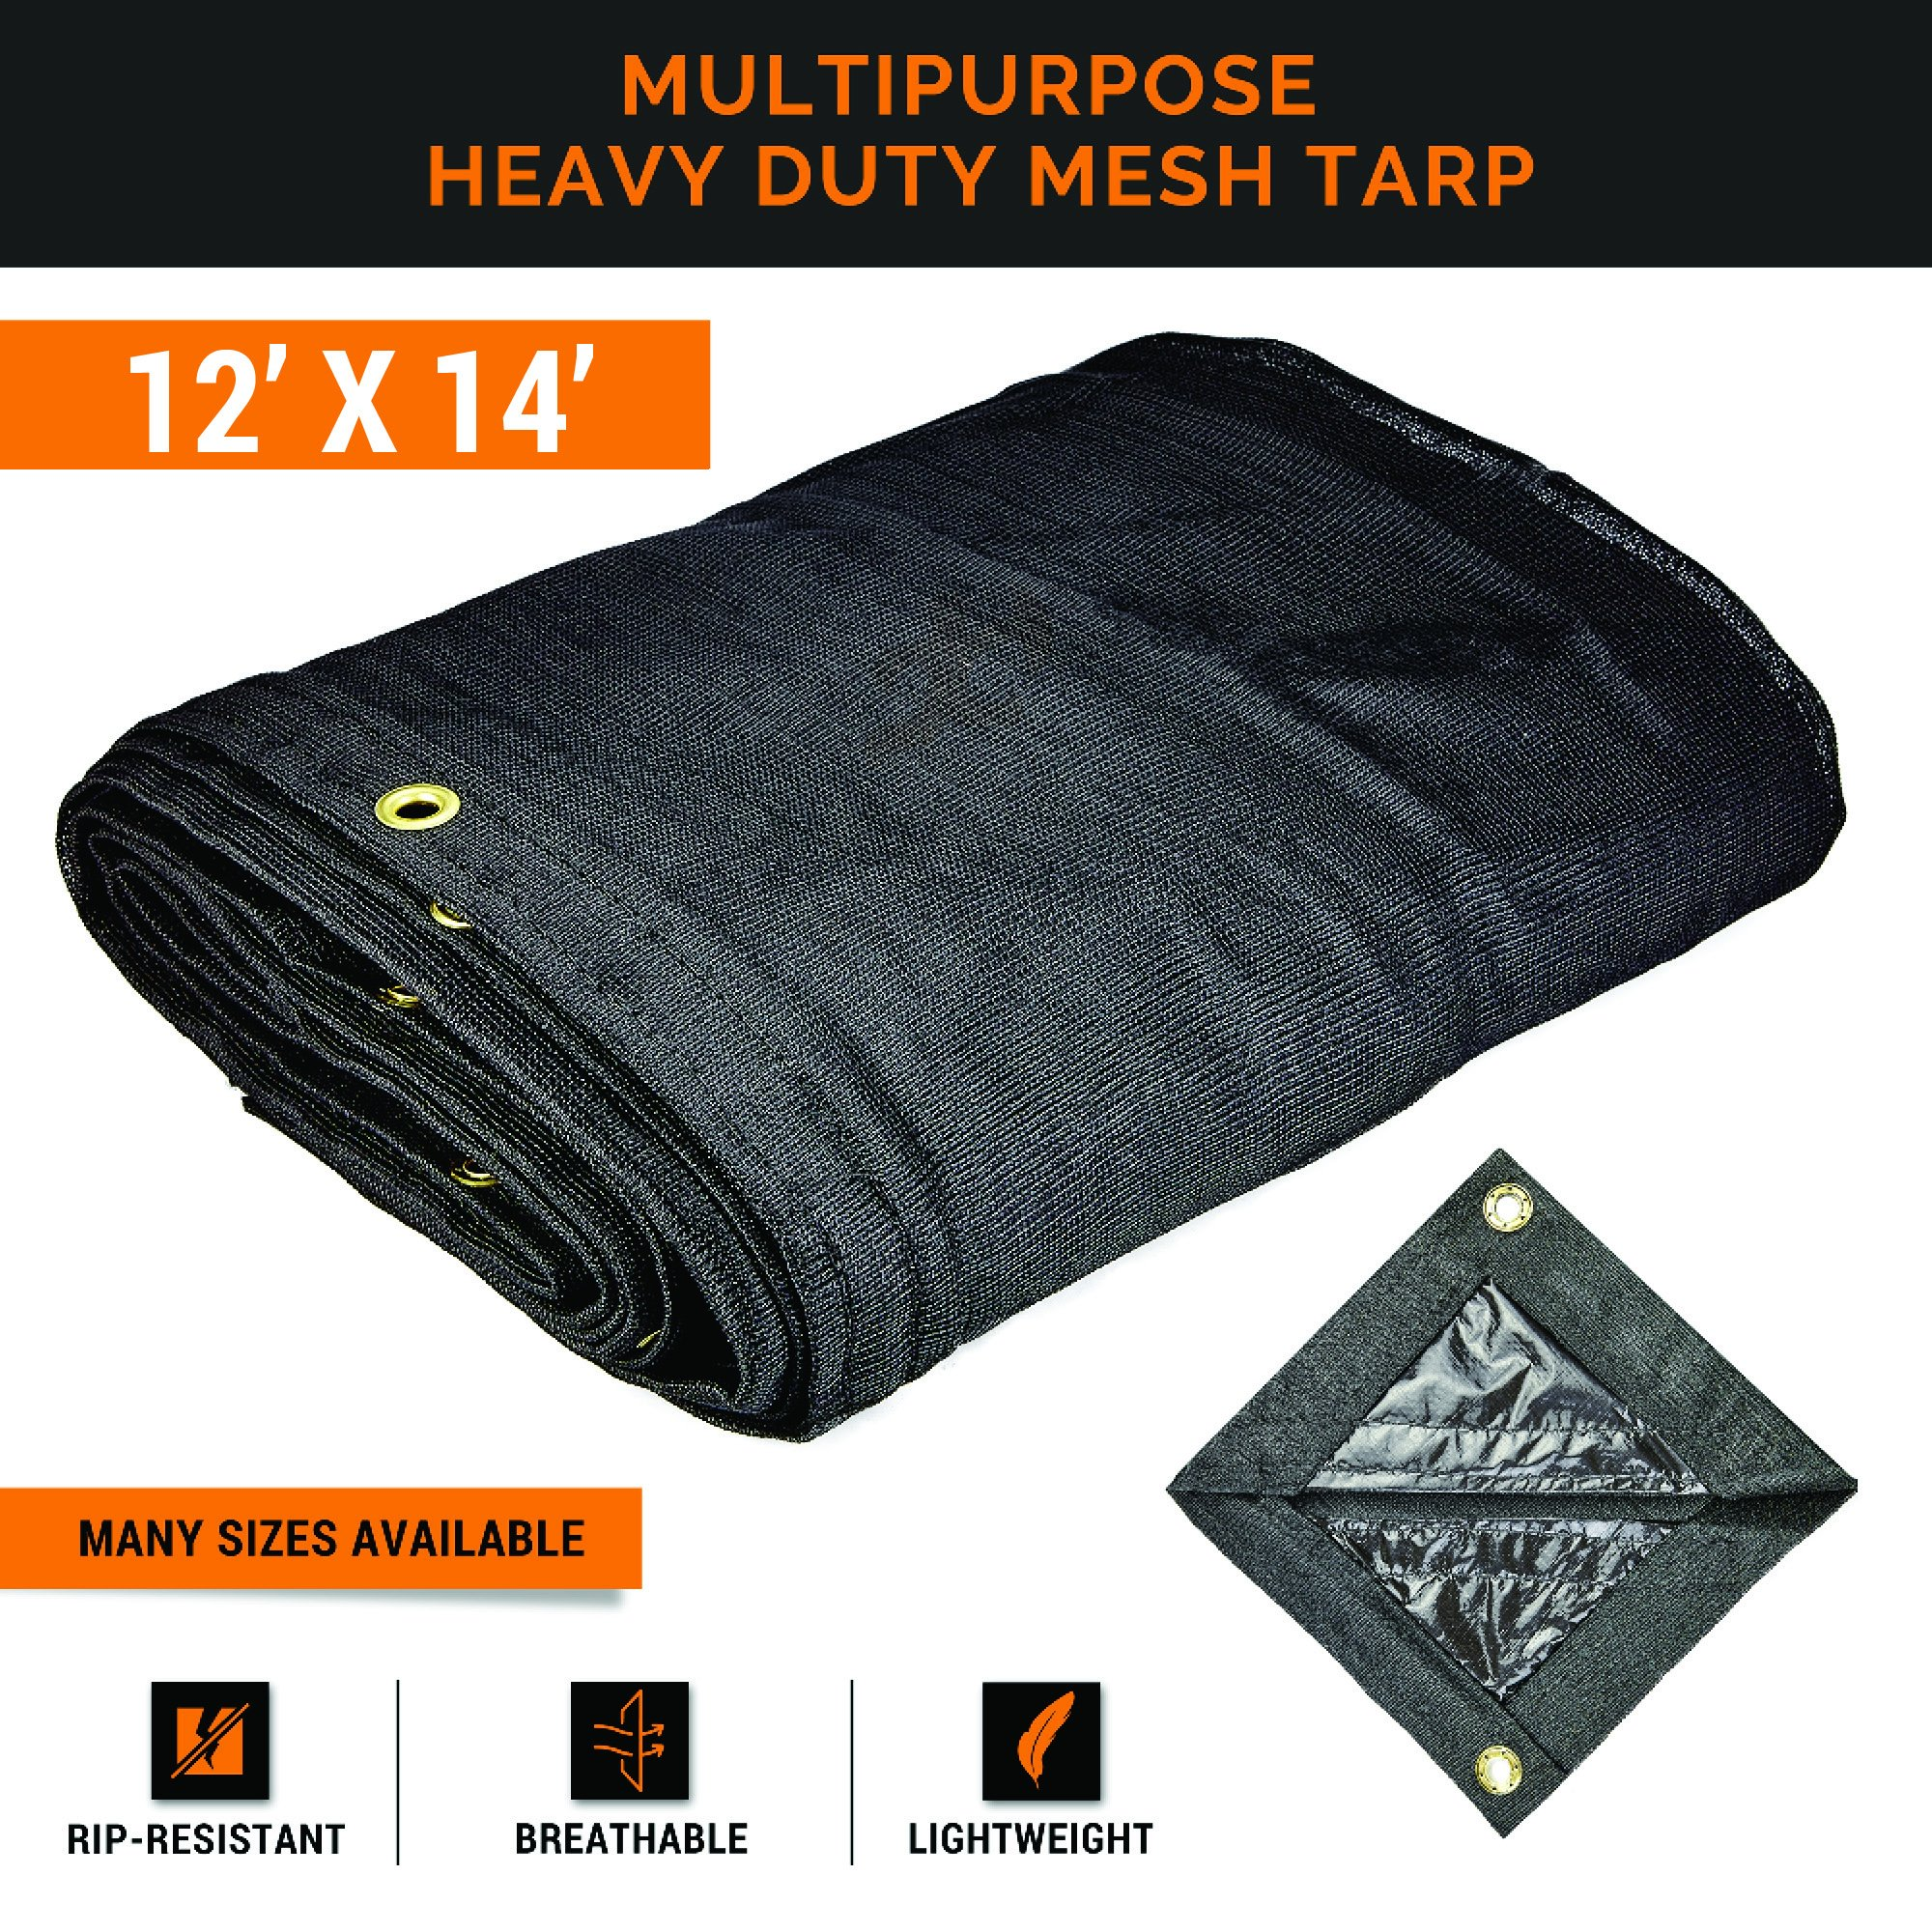 Xpose Safety Heavy Duty Mesh Tarp – 12' x 14' Multipurpose Black Protective Cover with Air Flow - Use for Tie Downs, Shade, Fences, Canopies, Dump Trucks – Waterproof, Weather and Tear Resistant